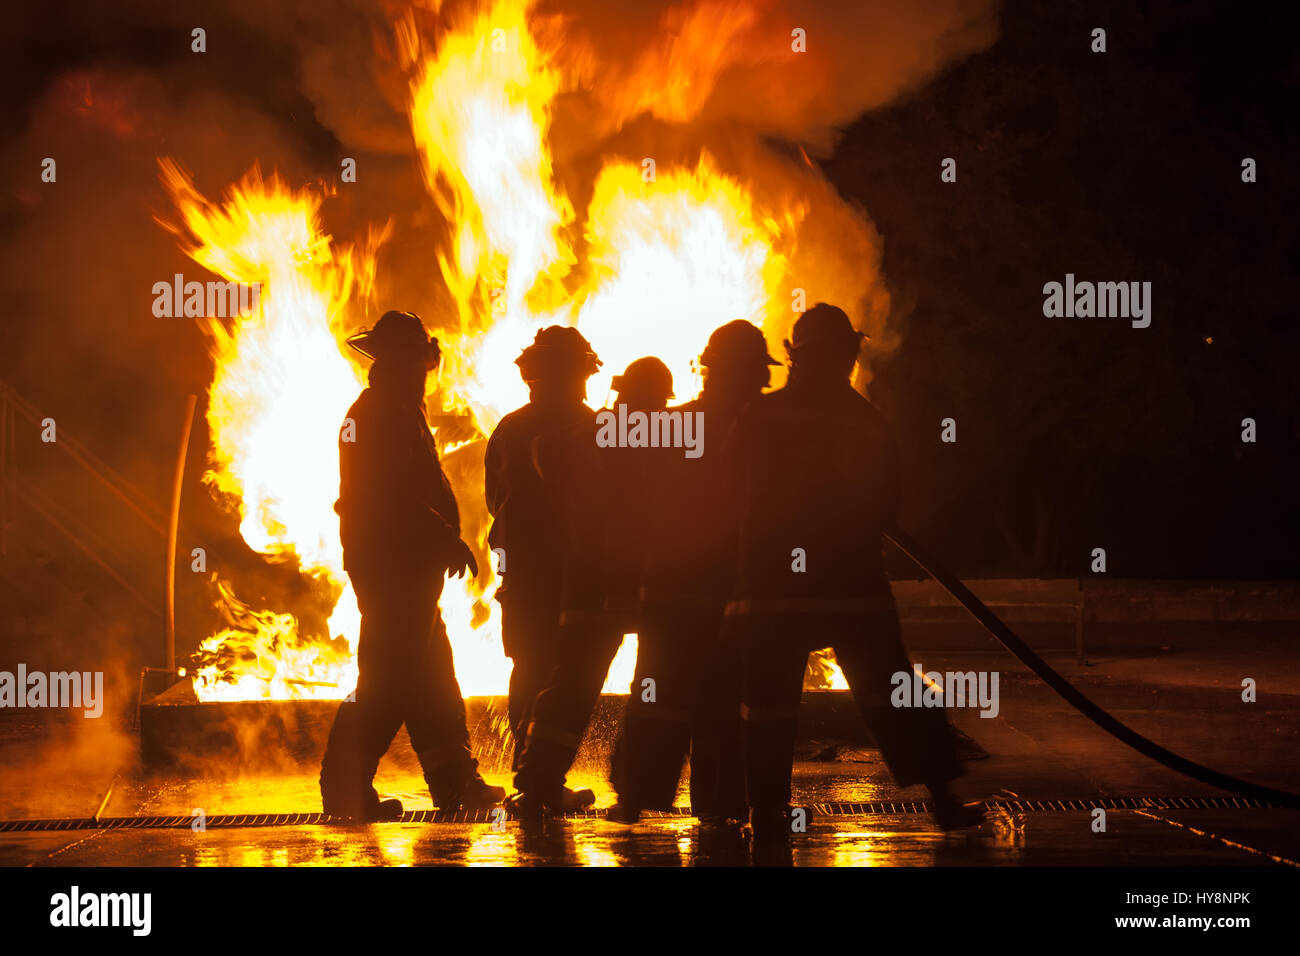 Group of firefighters hosing down burning tank durning firefighting exercise Stock Photo